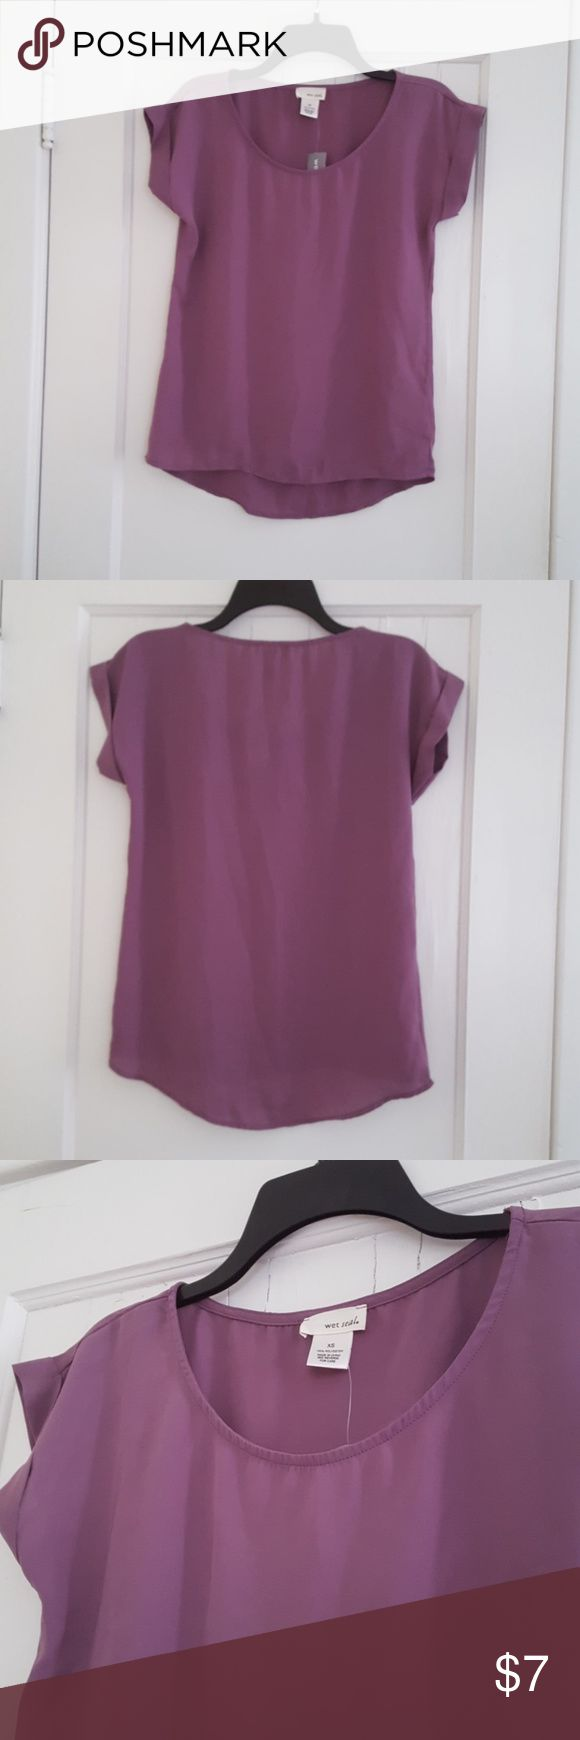 NWT Short sleeve semi-sheer top Purple short sleeve top is 100% polyester and has a loose flowy fit. Never worn and purchased right before Wet Seal discontinued, and has the original tags on it. Semi-sheer. Wet Seal Tops